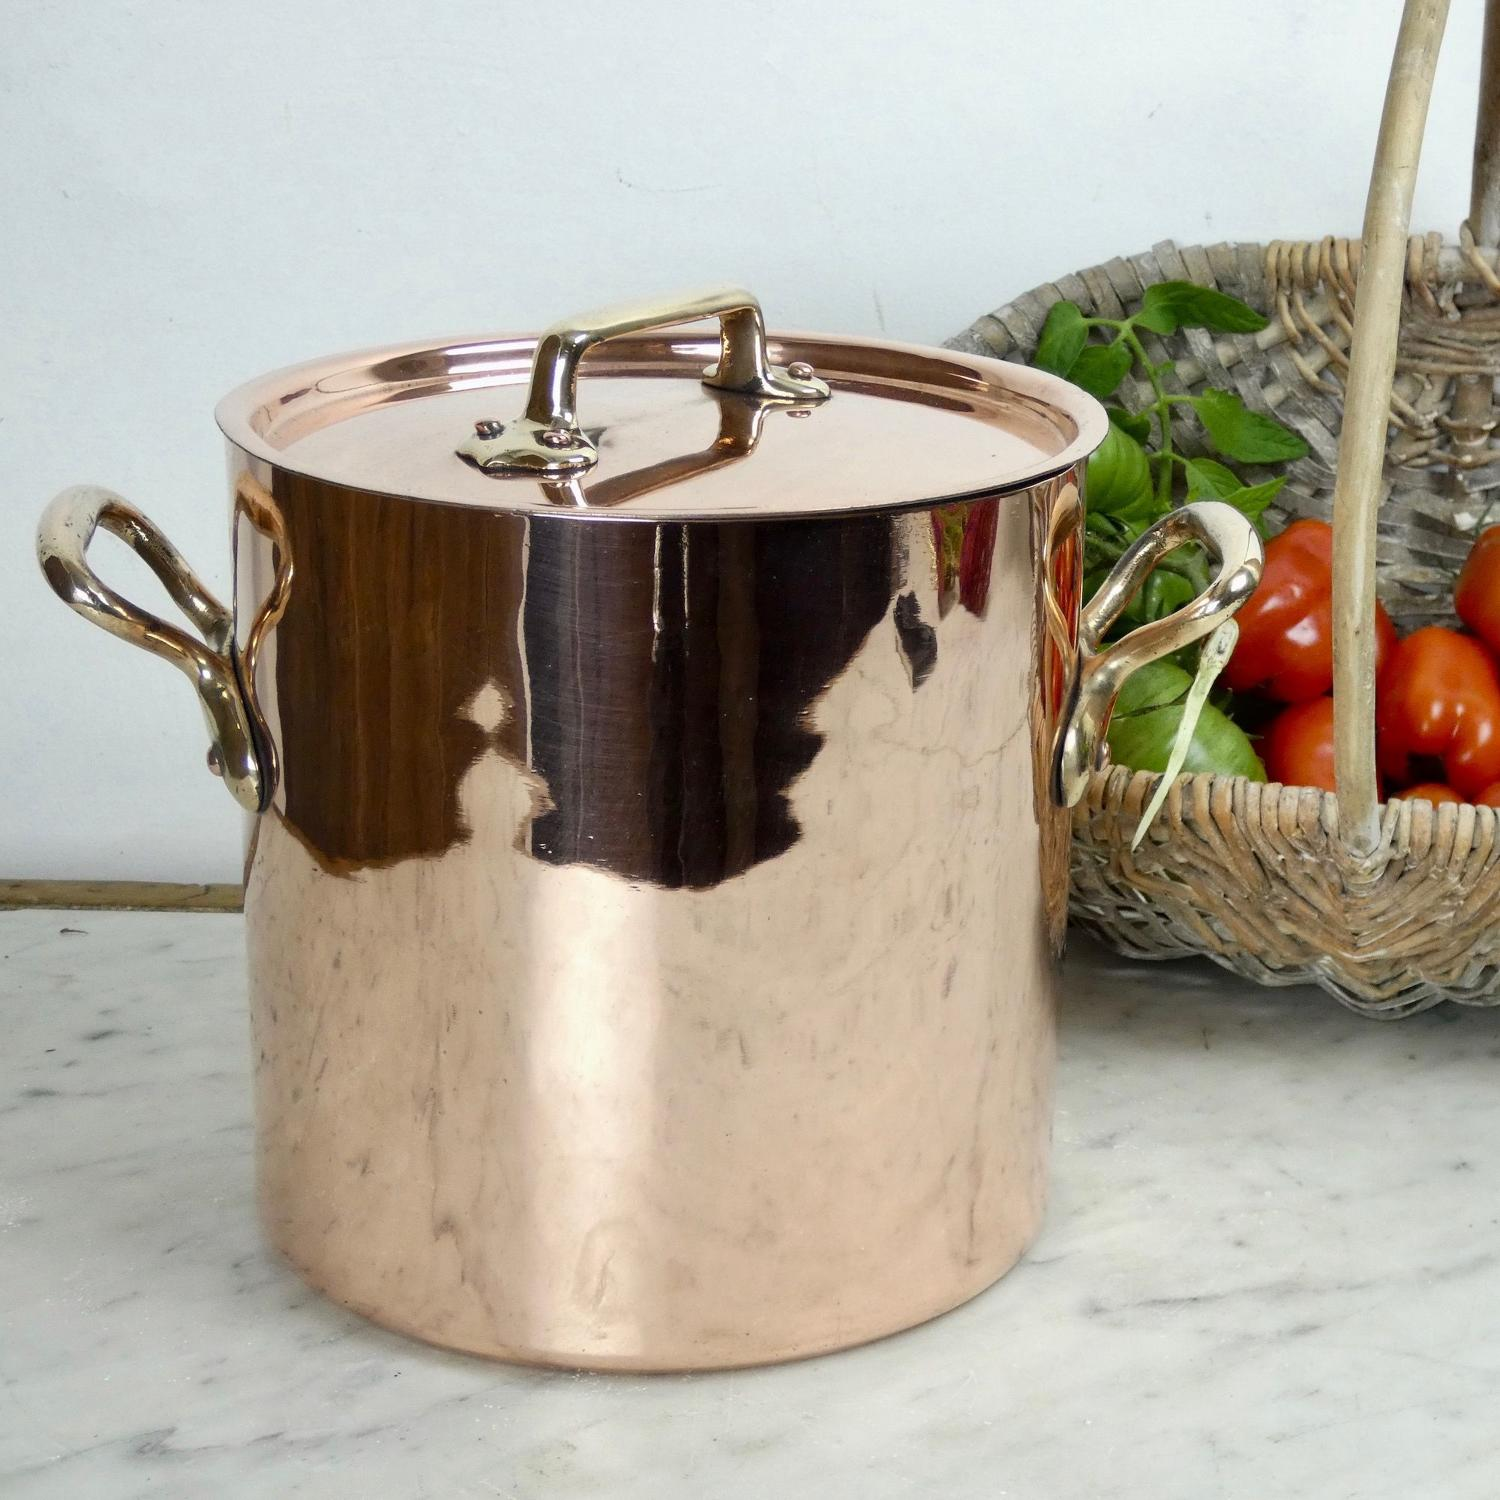 Small, French copper stockpot